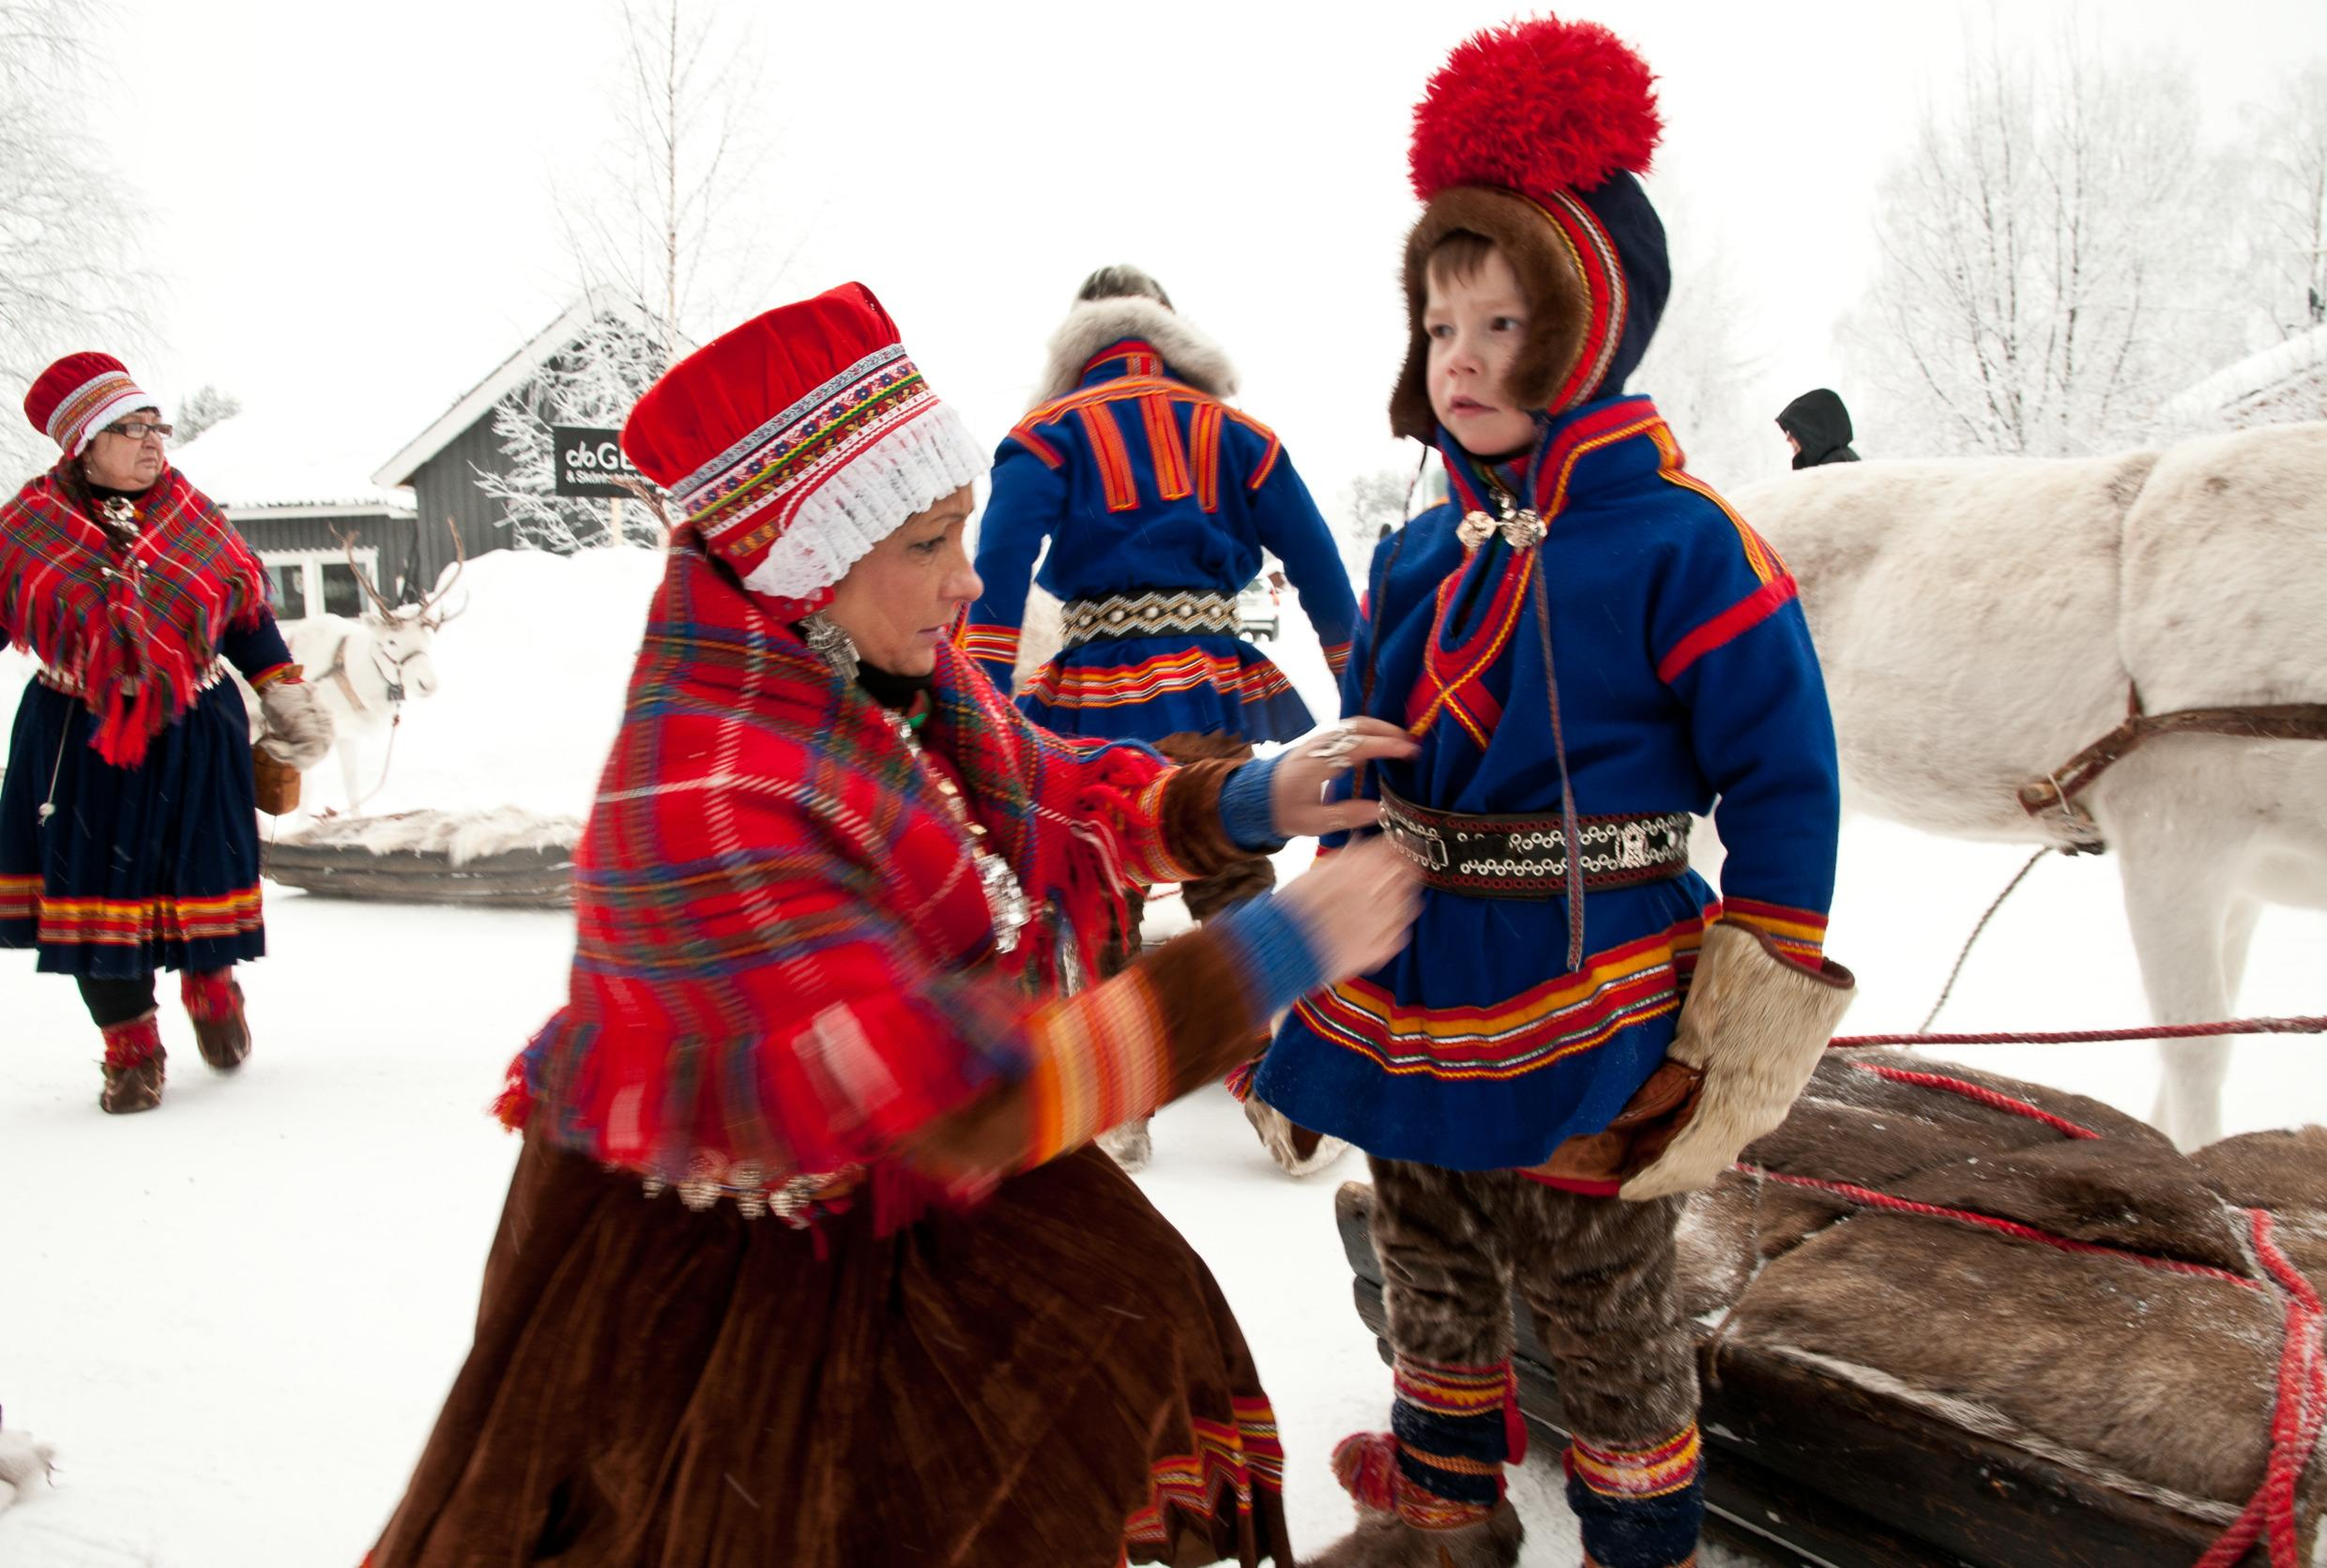 A woman helping a boy dress. They are both wearing traditional Sami clothing. In the background are two more people.